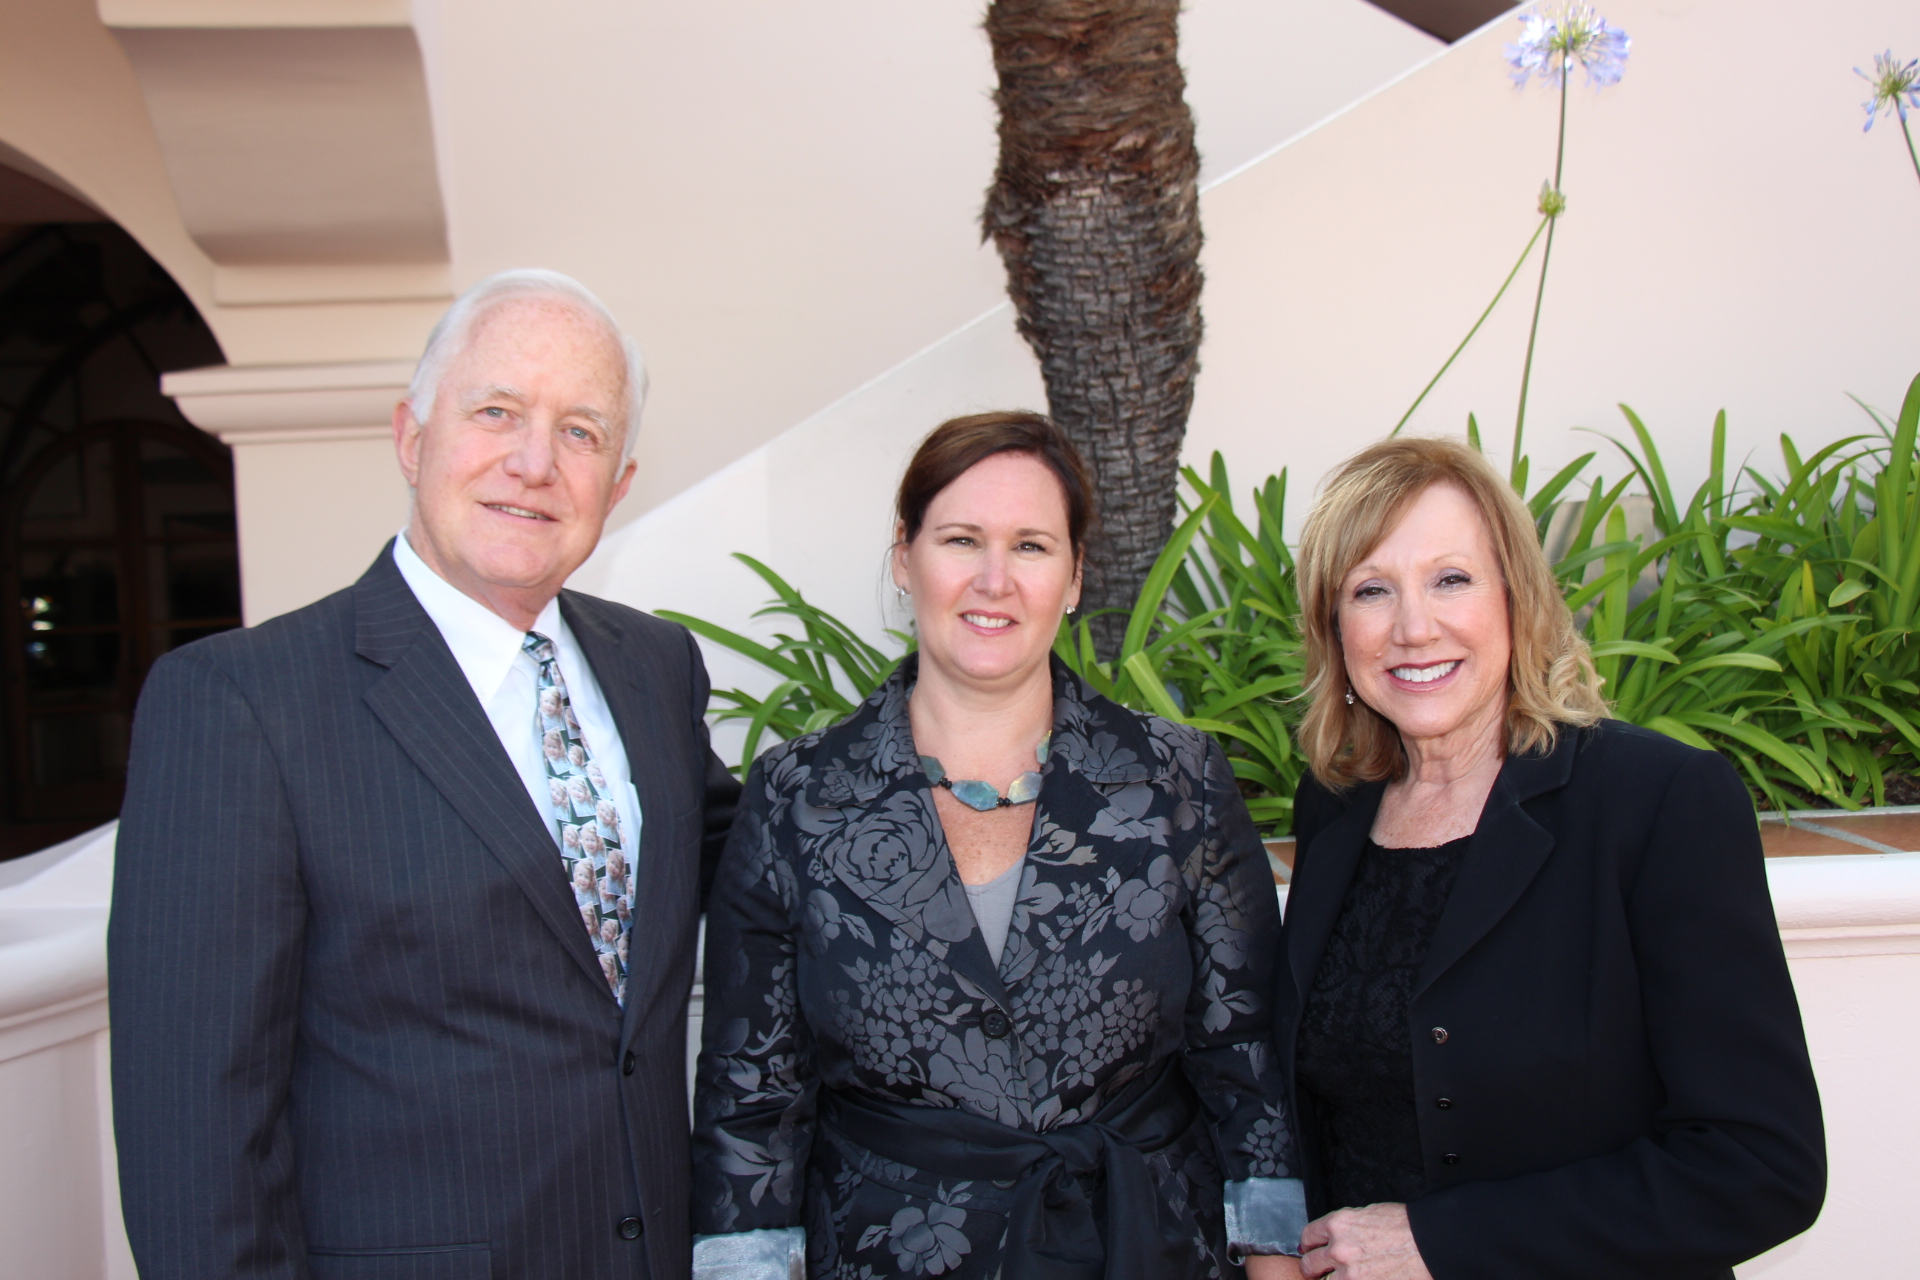 Candace Winkler, Scholarship Foundation of Santa Barbara president and CEO, center, with steering committee co-chairs Steve Amerikaner, left, and Susan Rodriguez.